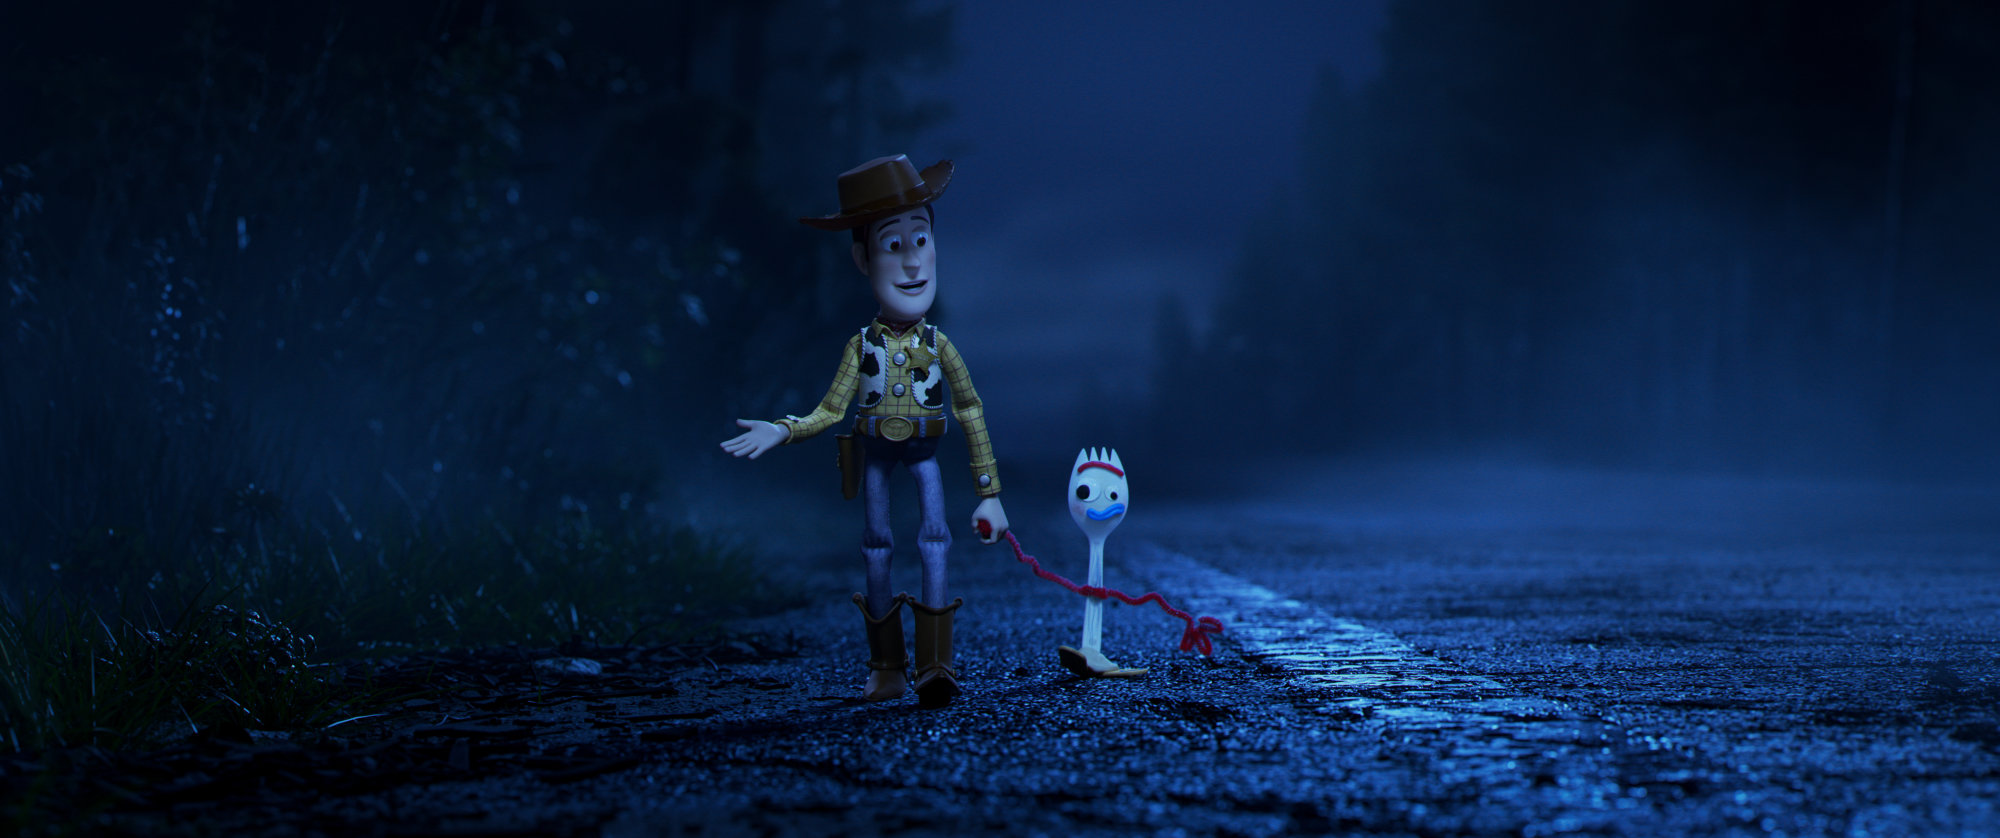 Forky may have shared a little too much about what Woody told him to Gabby Gabby...